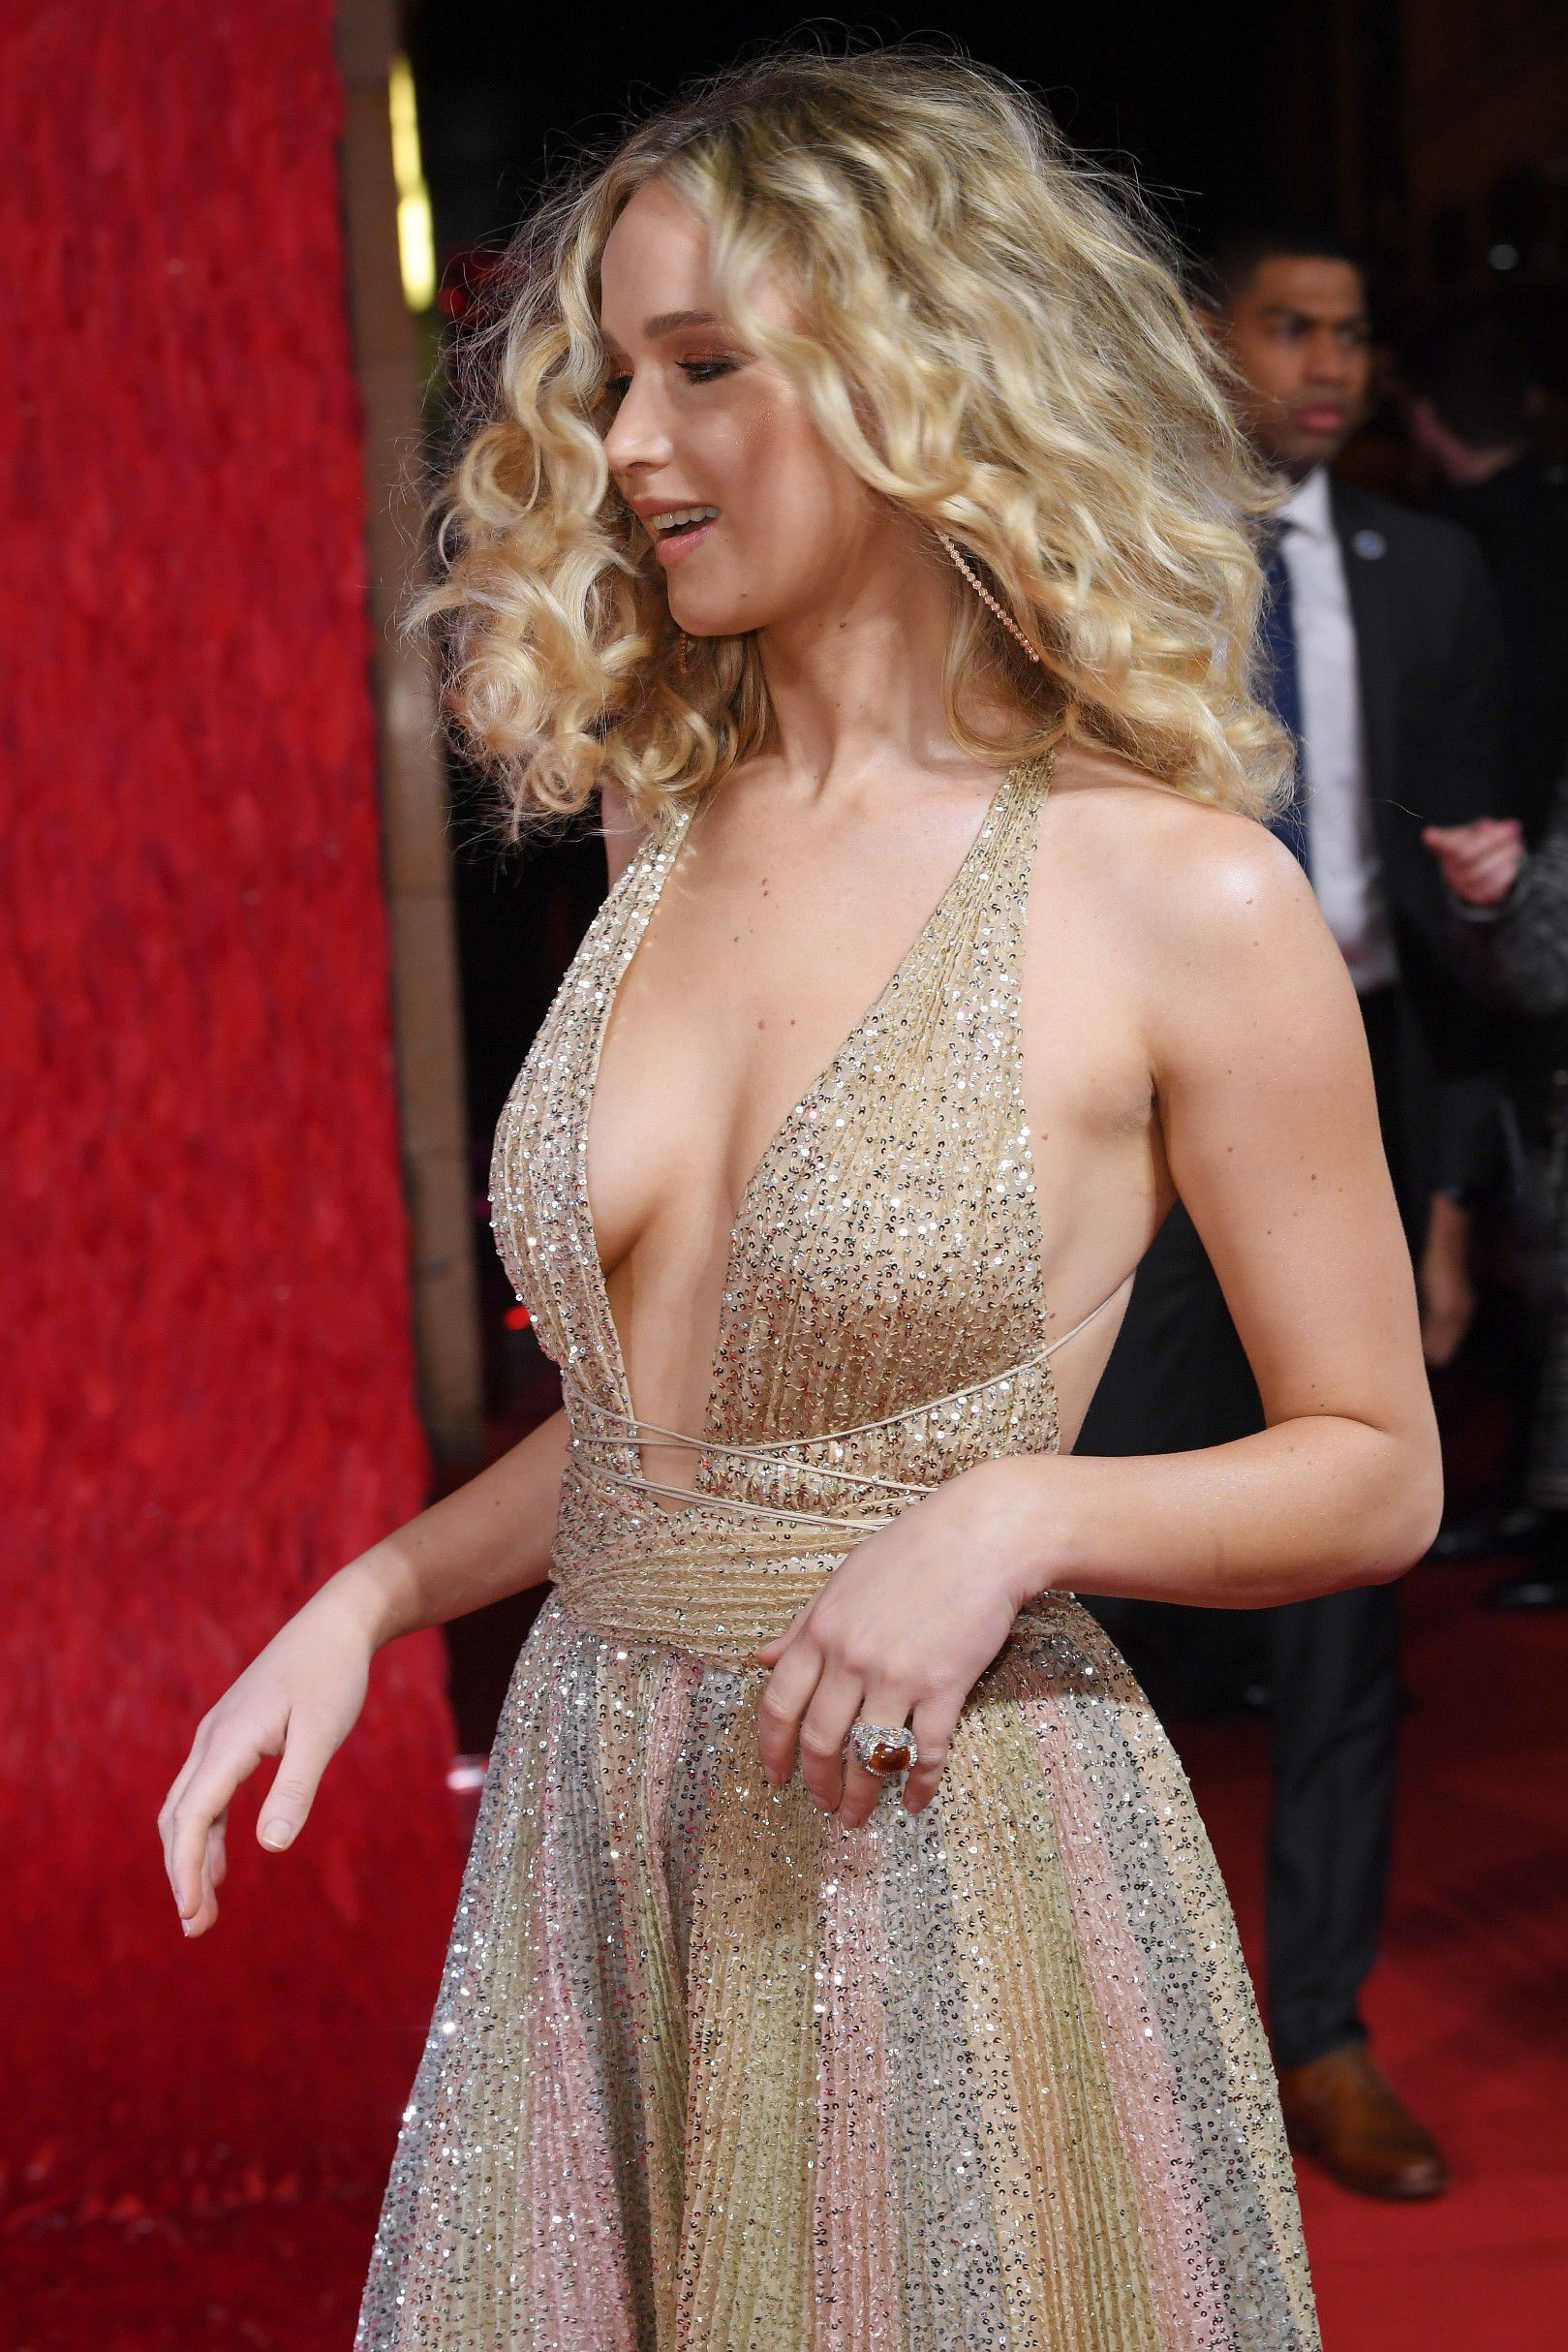 jennifer-lawrence-cleavage-at-red-sparrow-premiere-in-london-8029